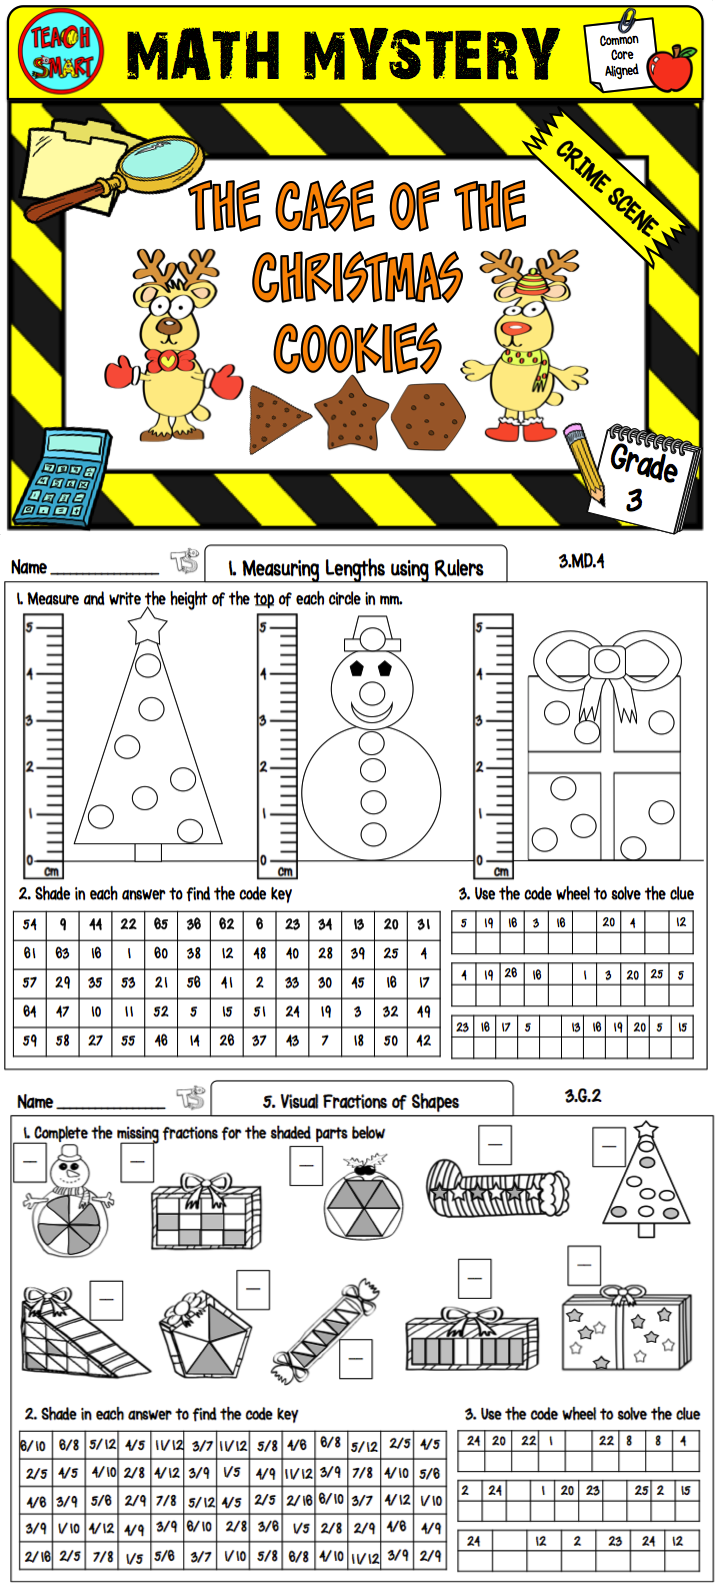 Math Mystery The Case of the Christmas Cookies Grade 3 | Mystery ...